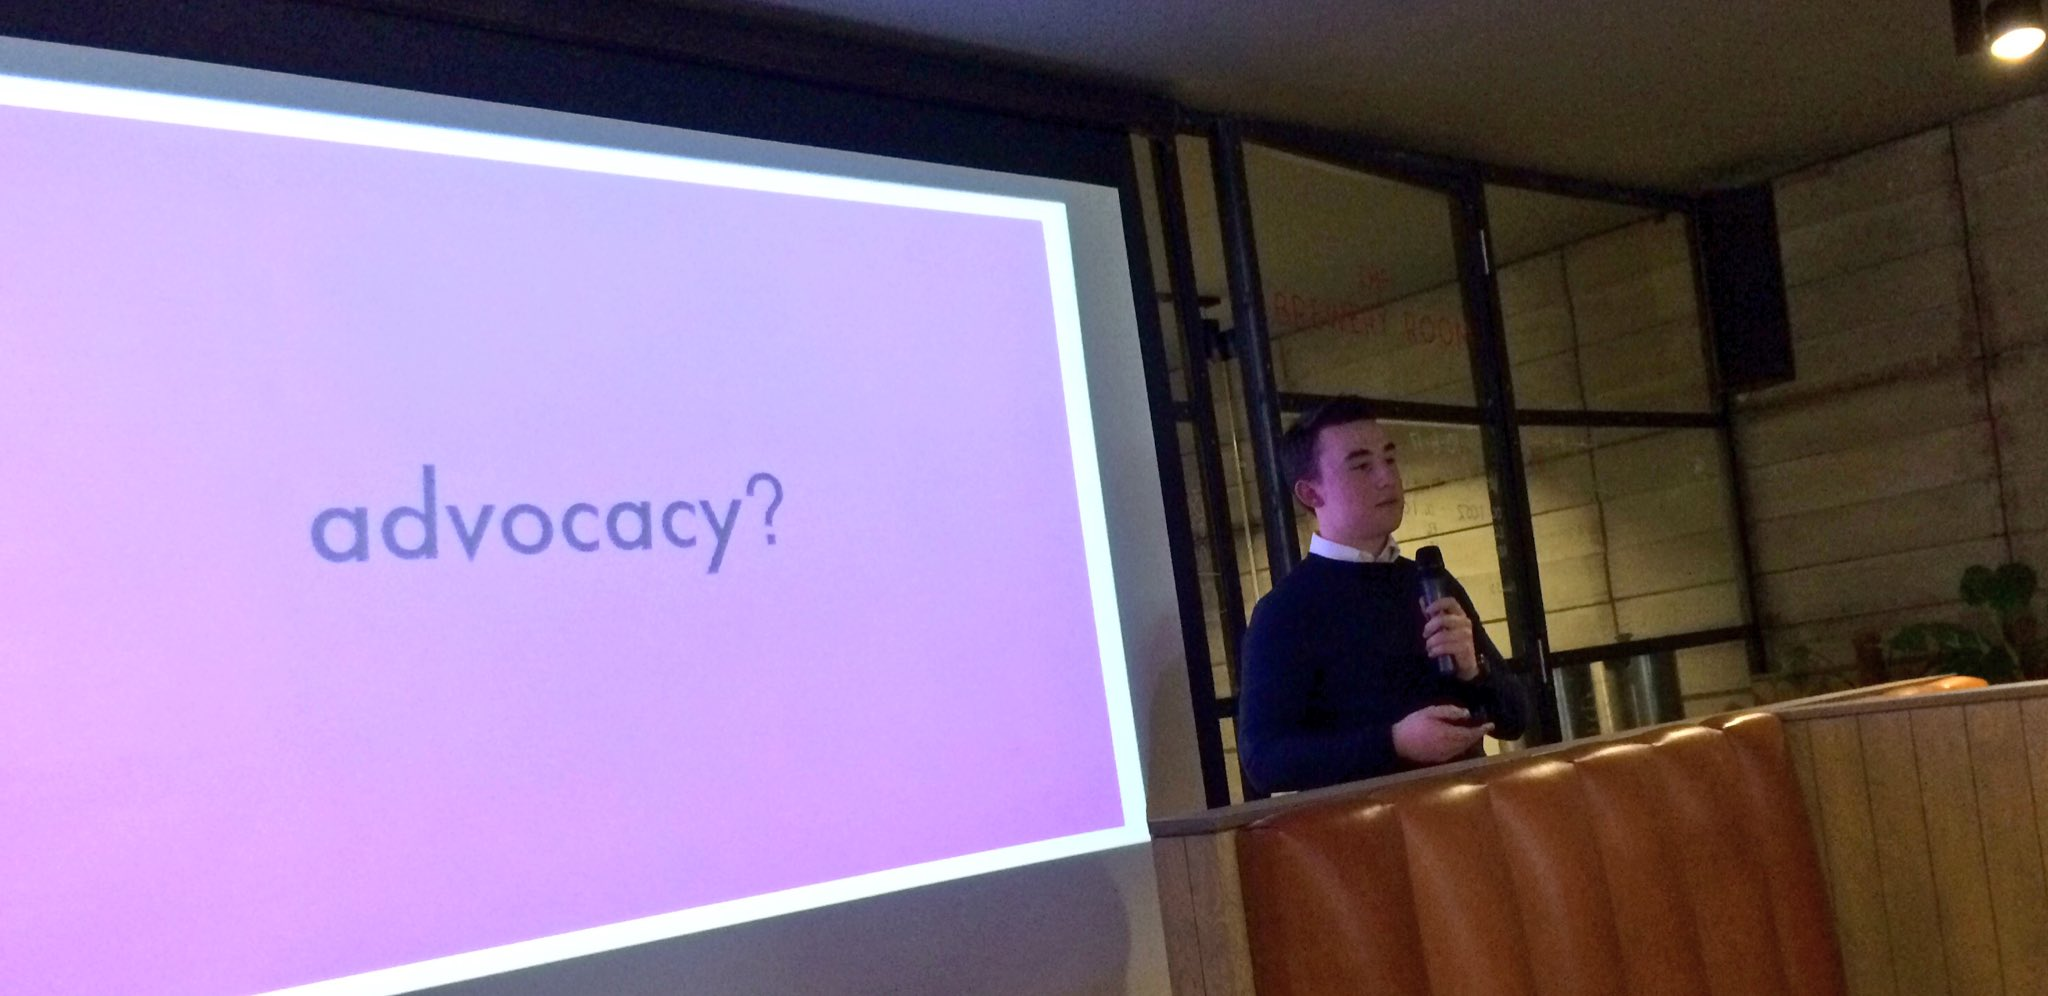 At #makeshare @ethan_dalziel explains with vision and clarity how #boostbydesign strengthened advocacy in the city https://t.co/PufhvDDg2Y